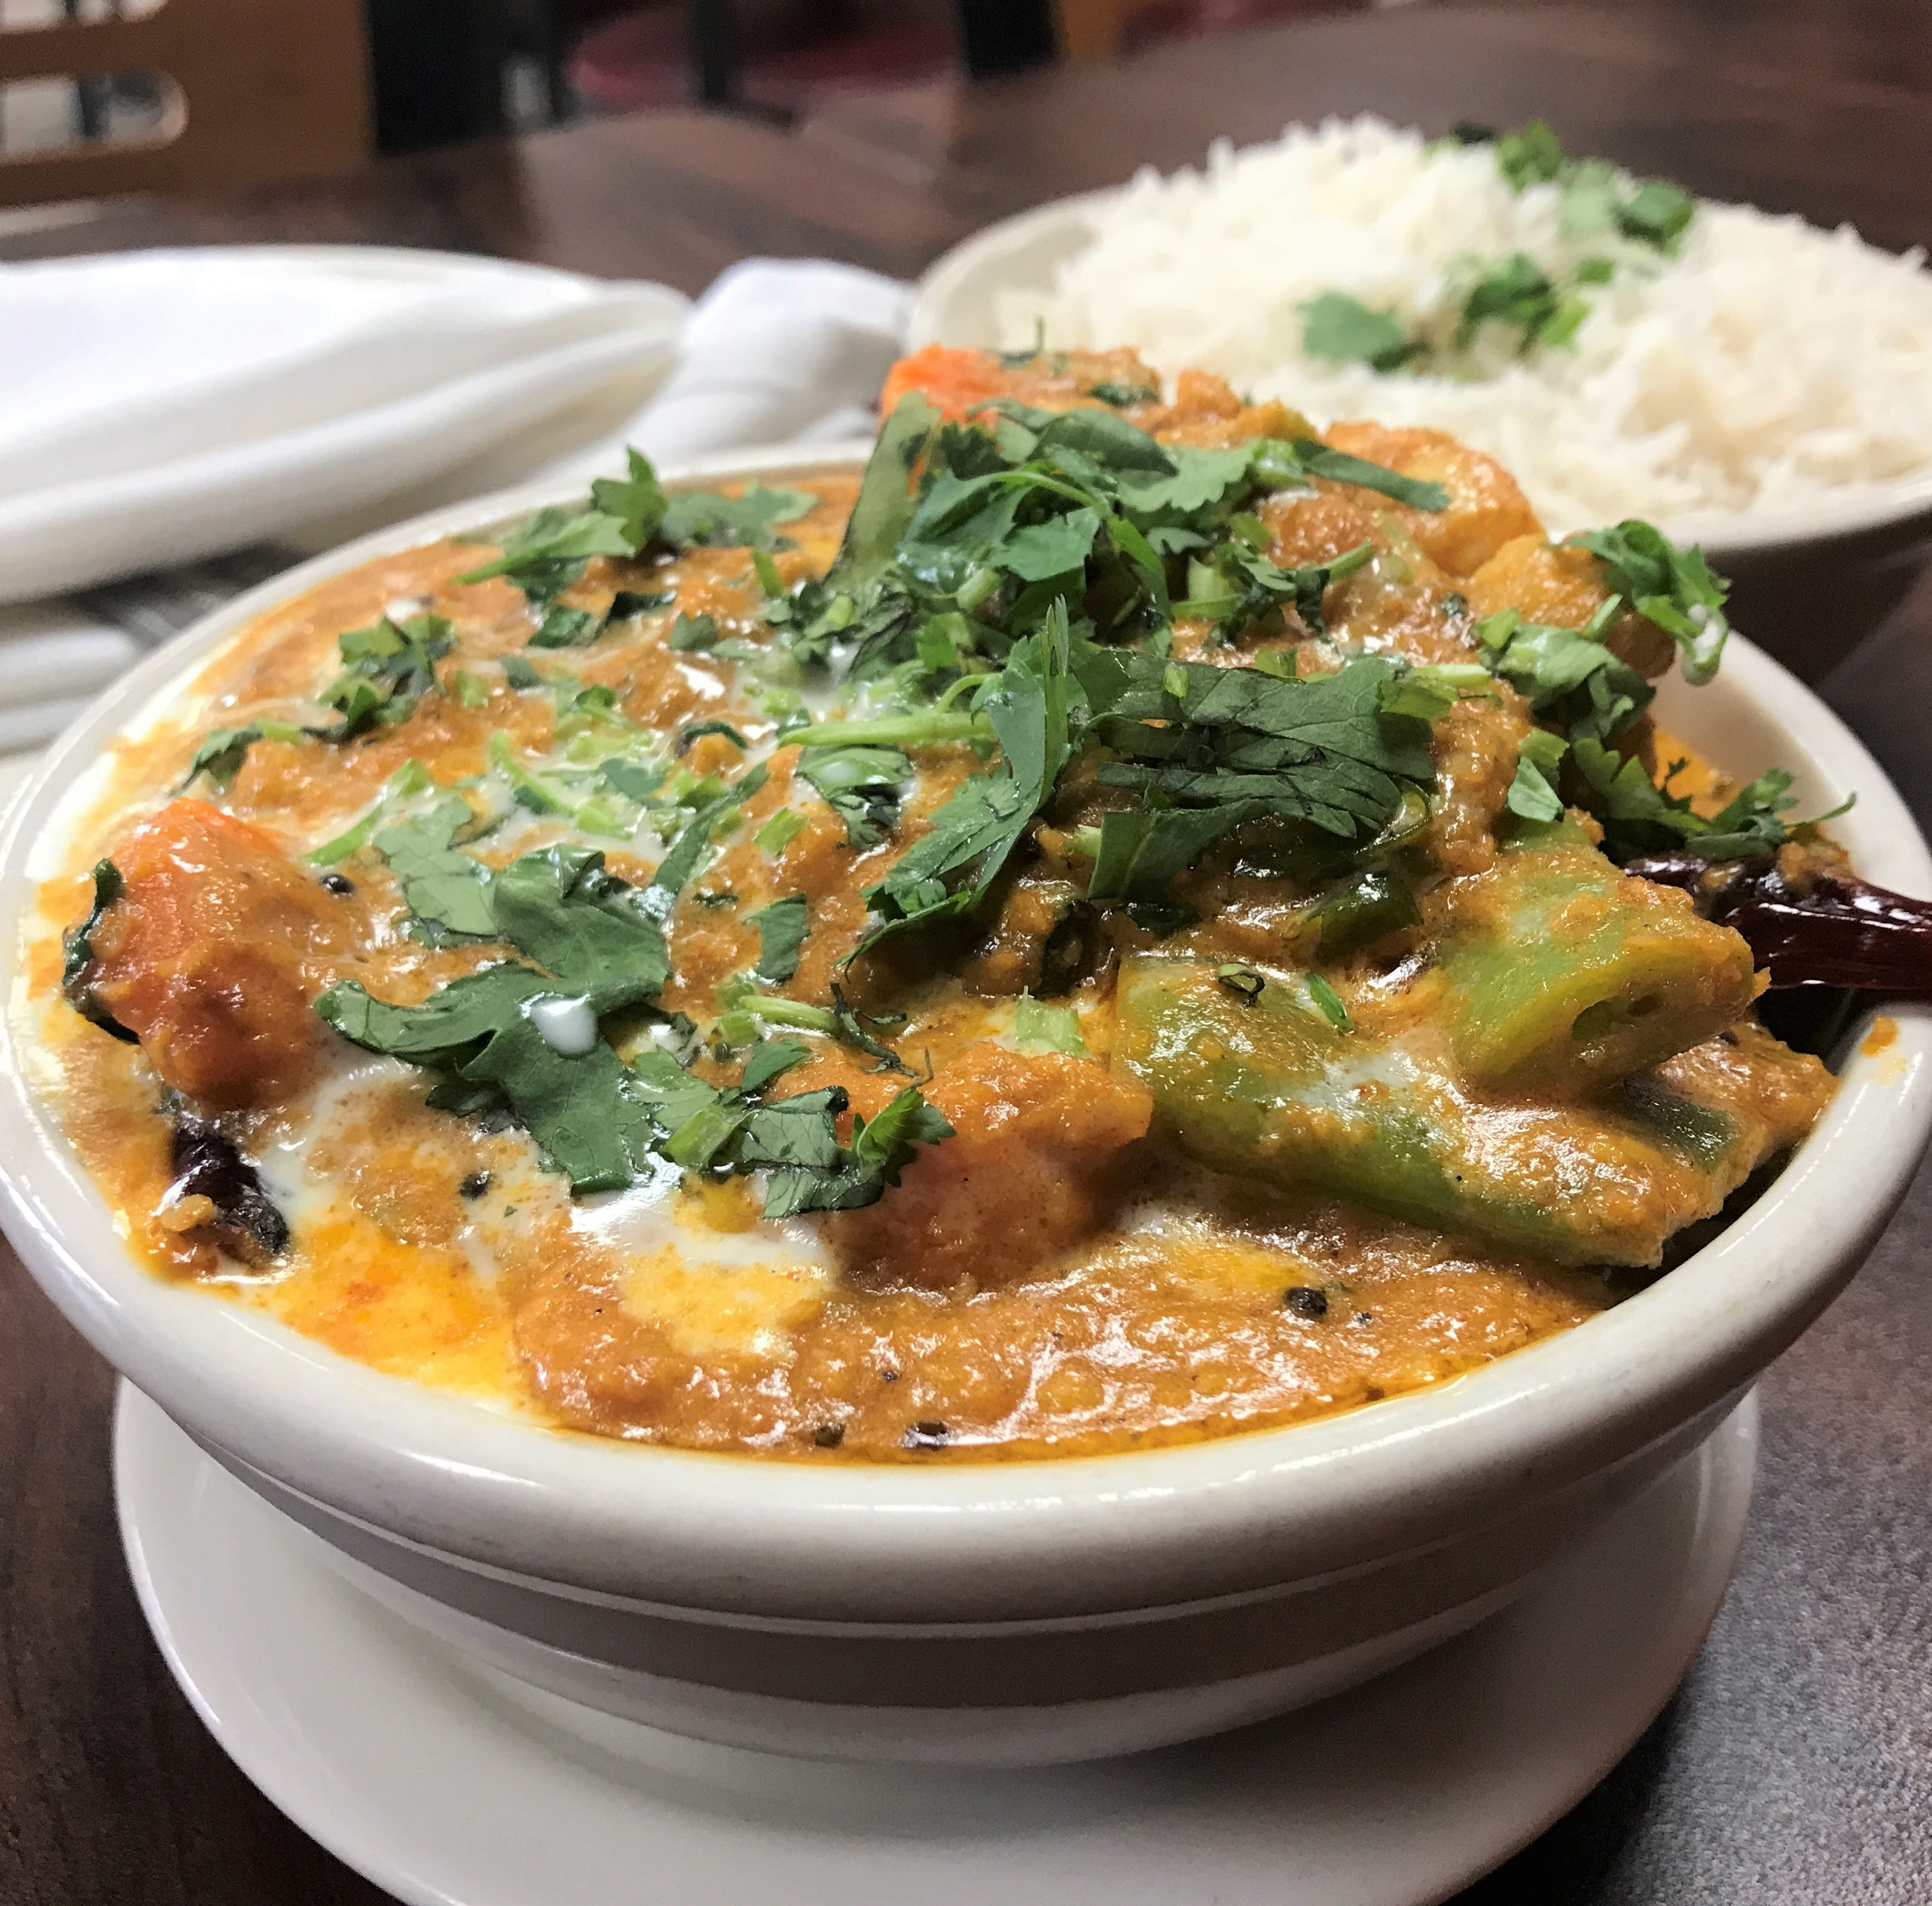 Indian restaurant in Des Moines is given new life with new owners and new menu offerings